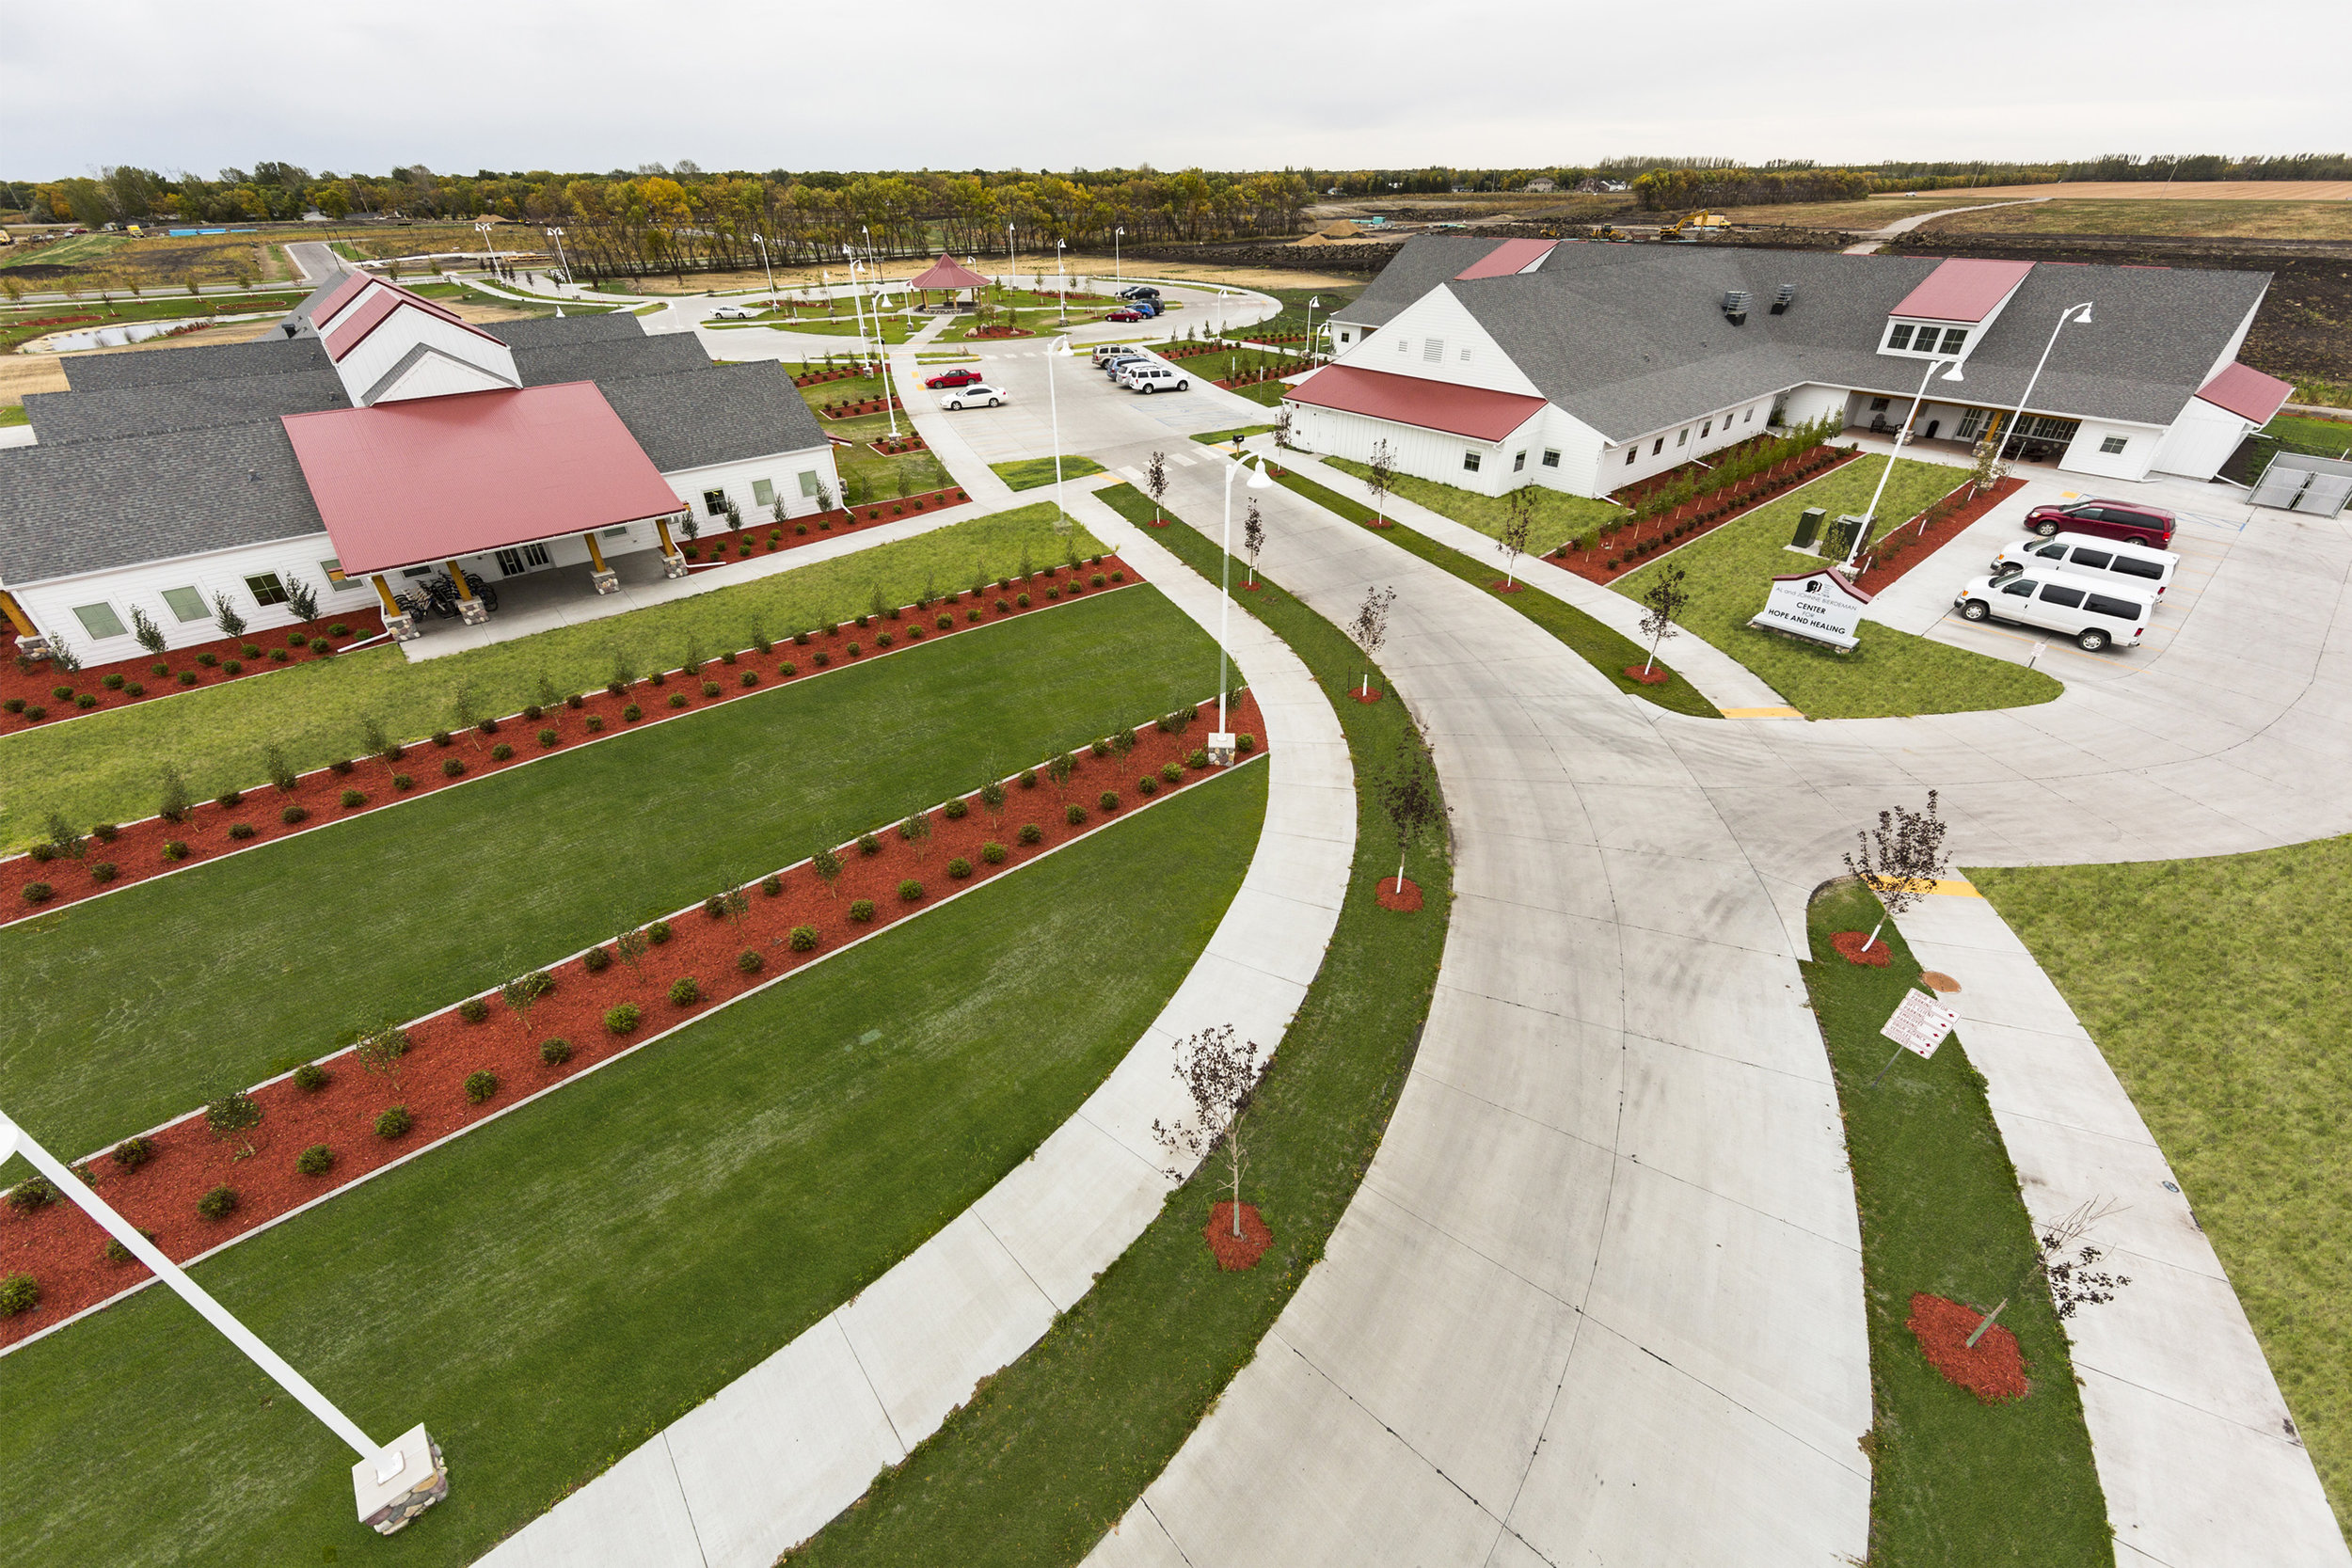 The streets and roundabout at the Boys and Girls Ranch in Fargo were designed for both pedestrians walking on the sidewalk, and the flow of traffic entering the residence.